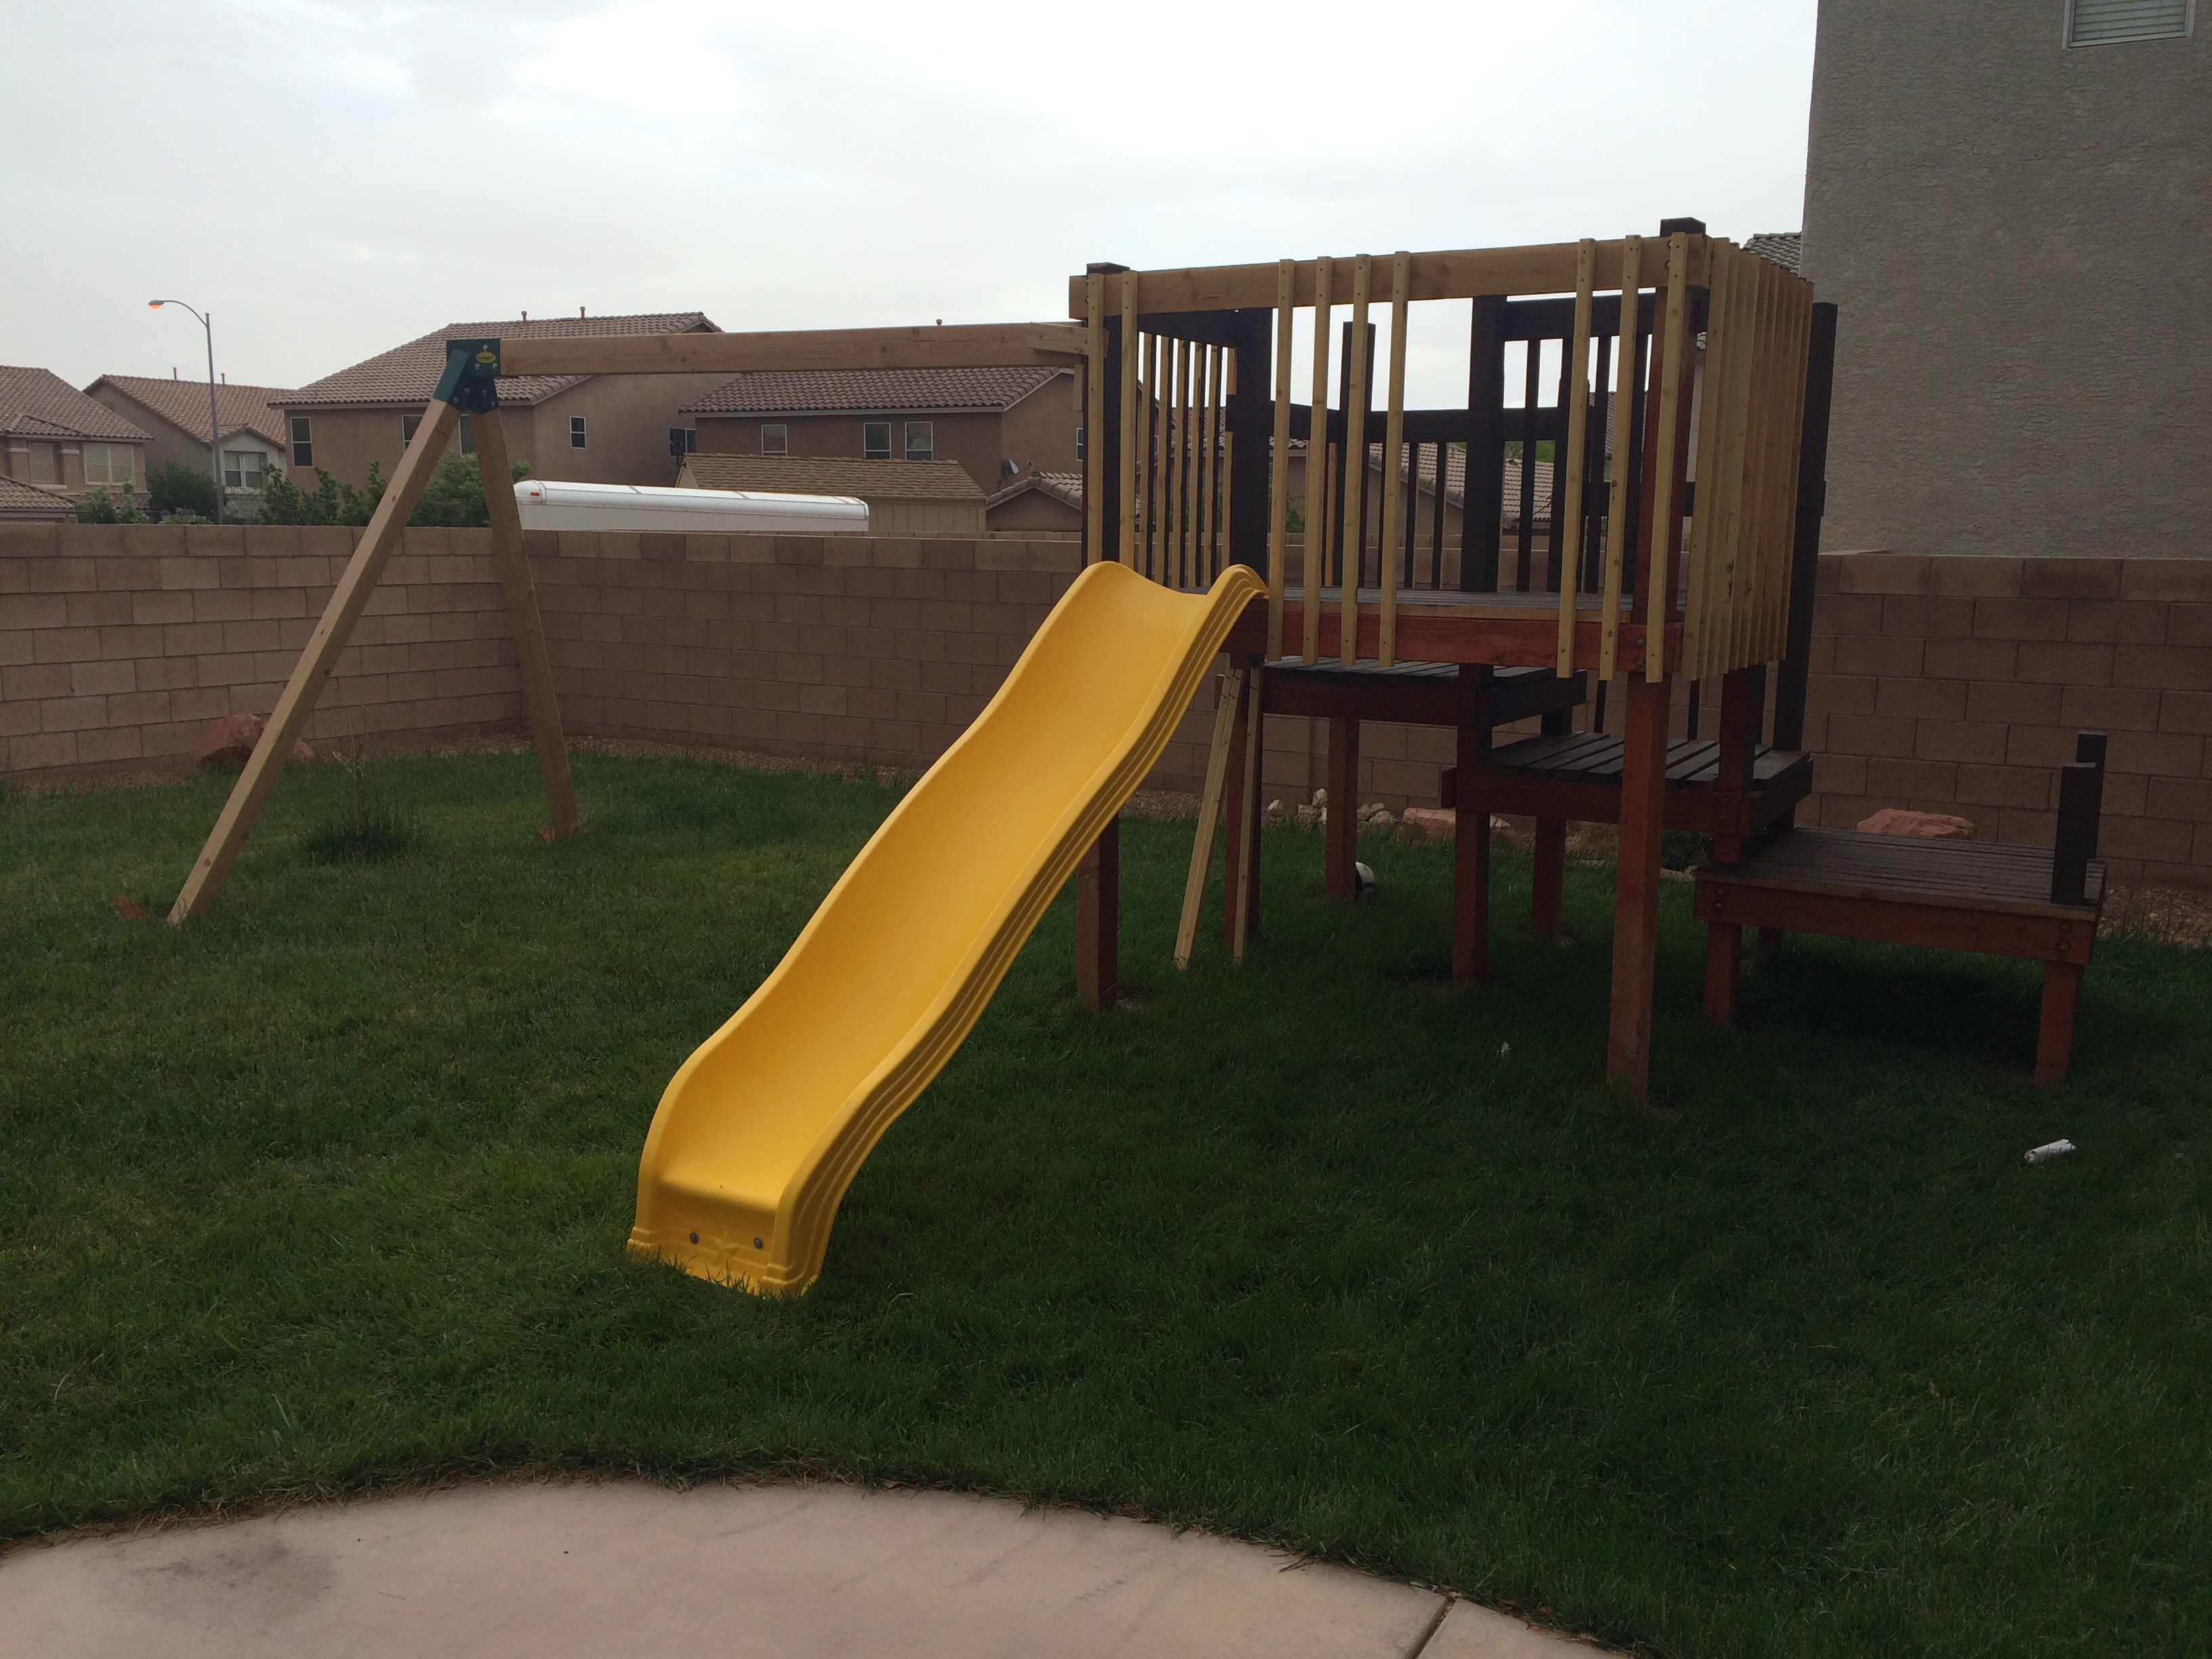 Picture of Fitting the Slide and Attaching the Swing Set